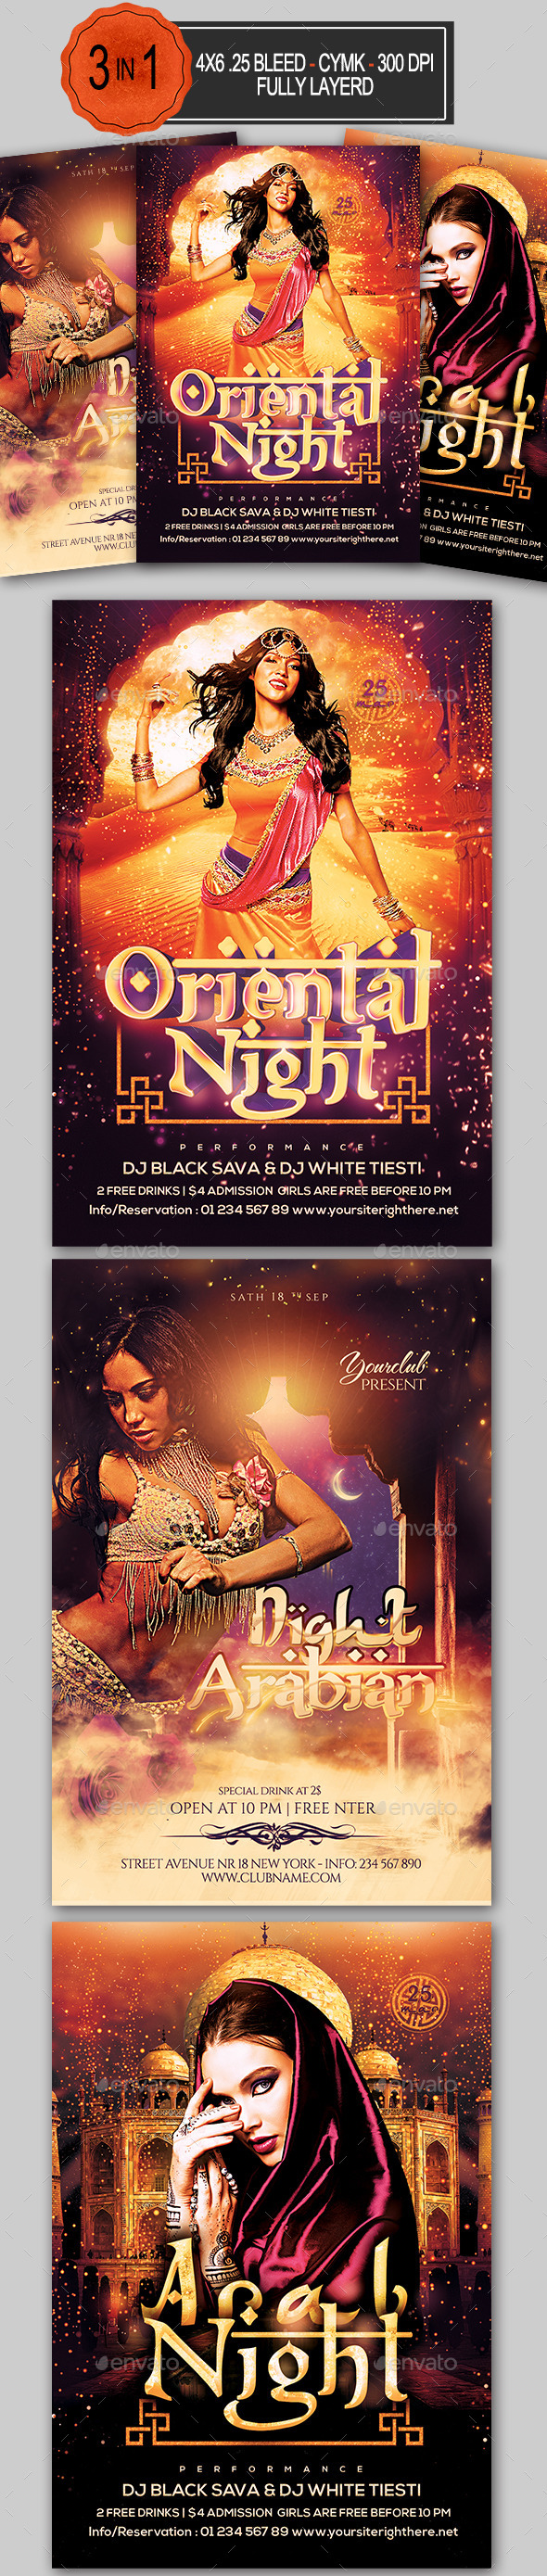 Arabian Nights Flyer Bundle - Clubs & Parties Events